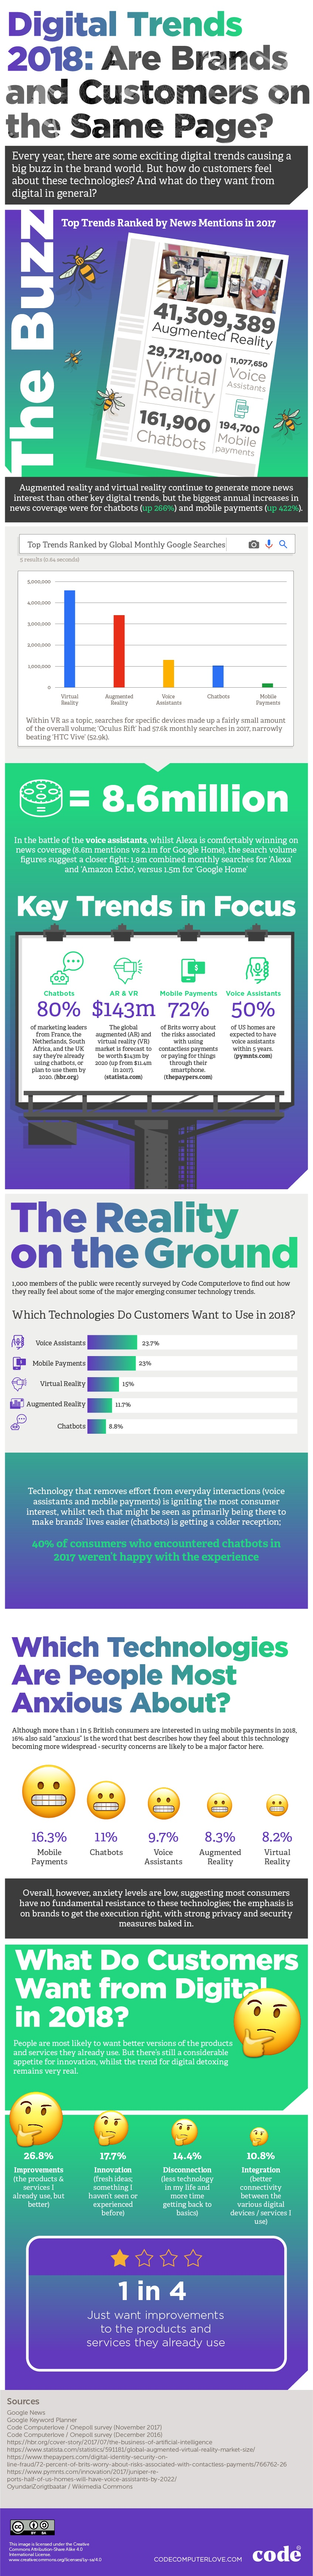 Which Technologies Do Your Customers Actually Want to Use in 2018? [Infographic] Digital CX Trends 2018 infographic